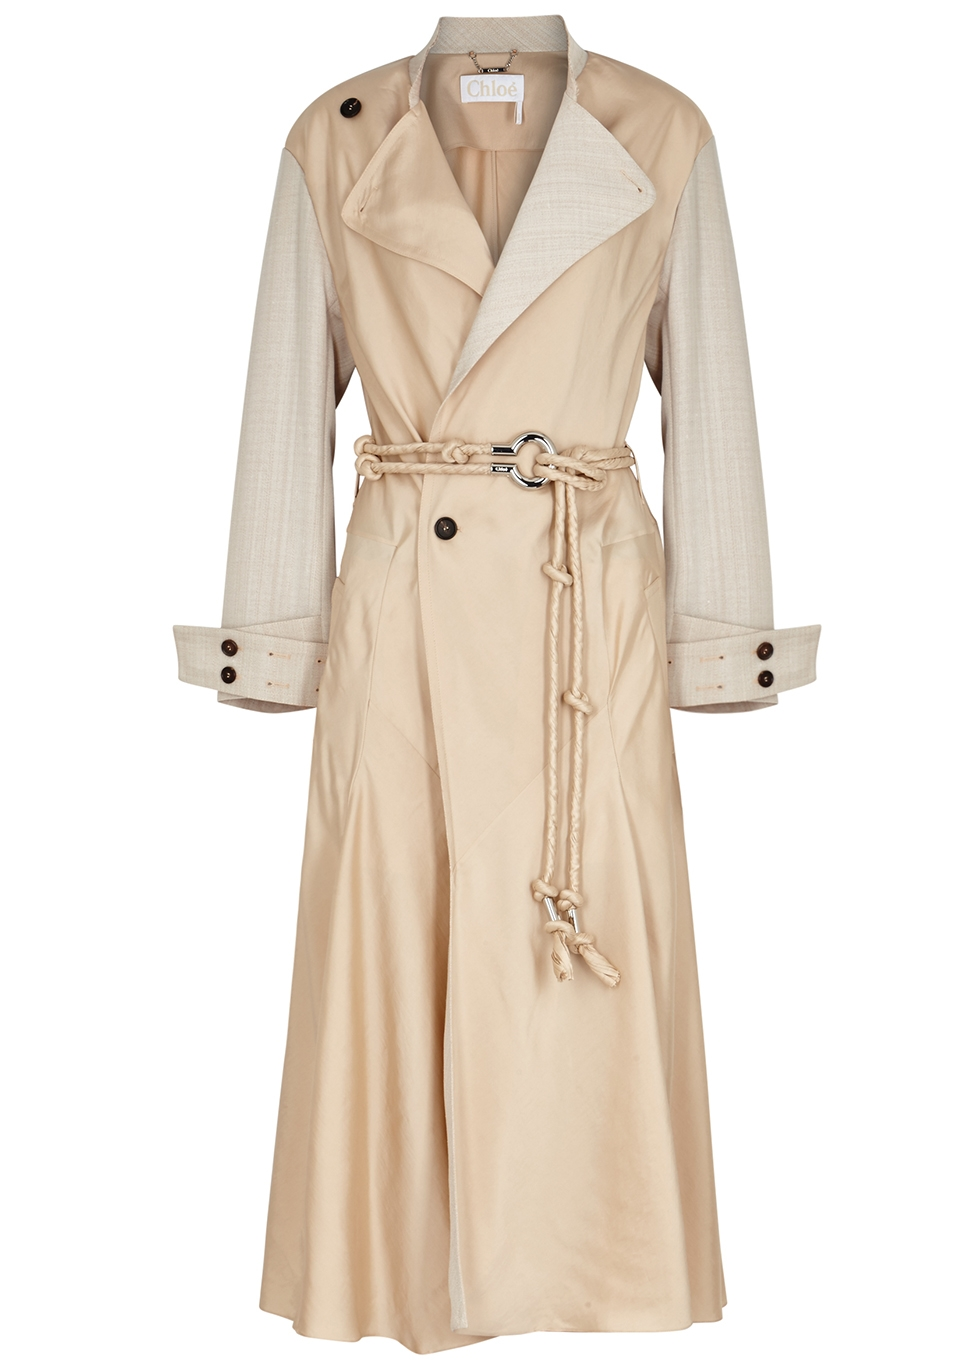 Flou sand satin-twill trench coat - Chloé